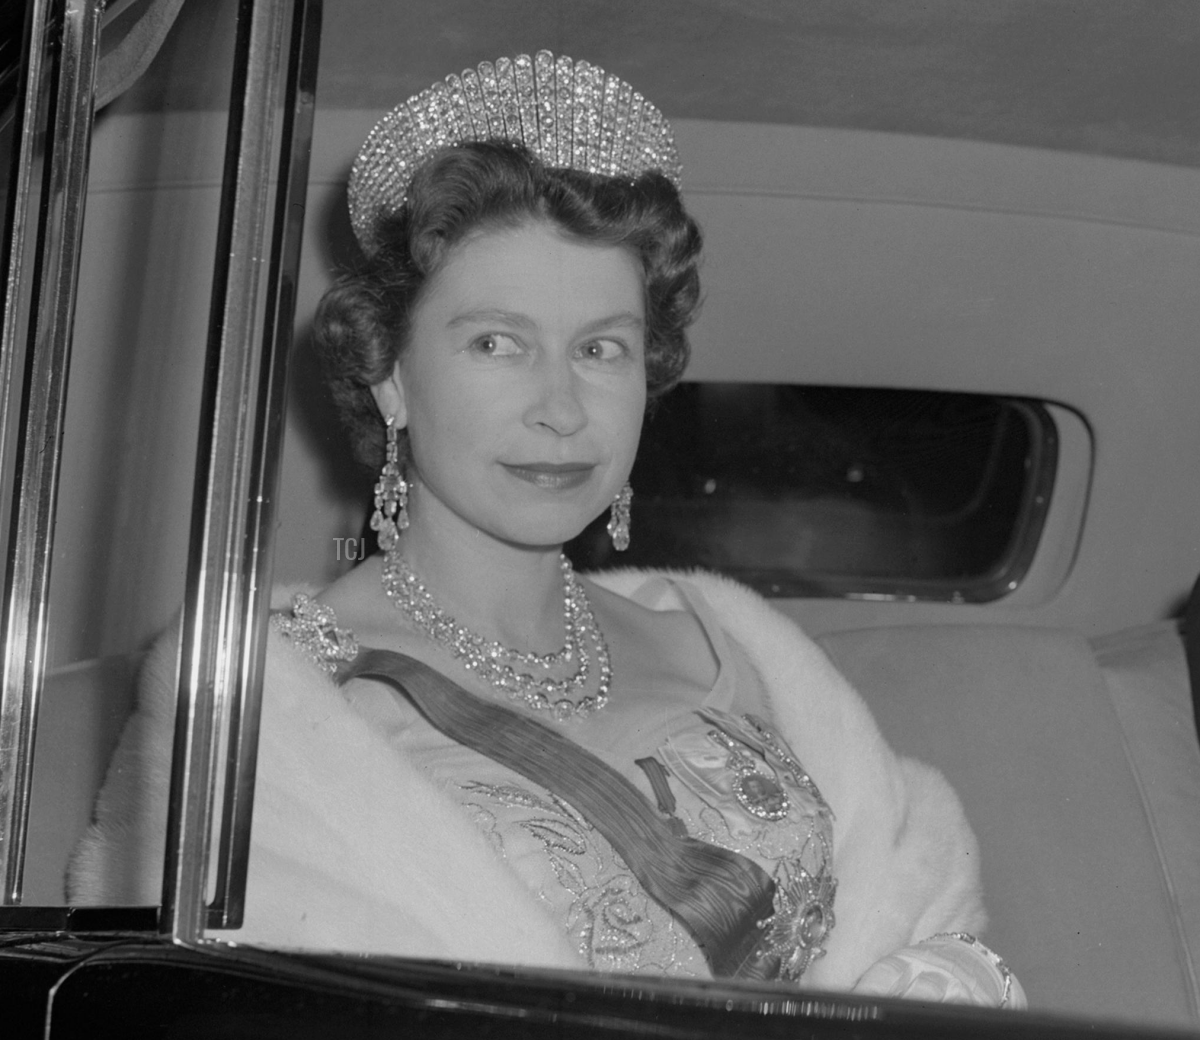 Queen Elizabeth II heads home after a dinner at the French Ambassador's residence in London, April 1960